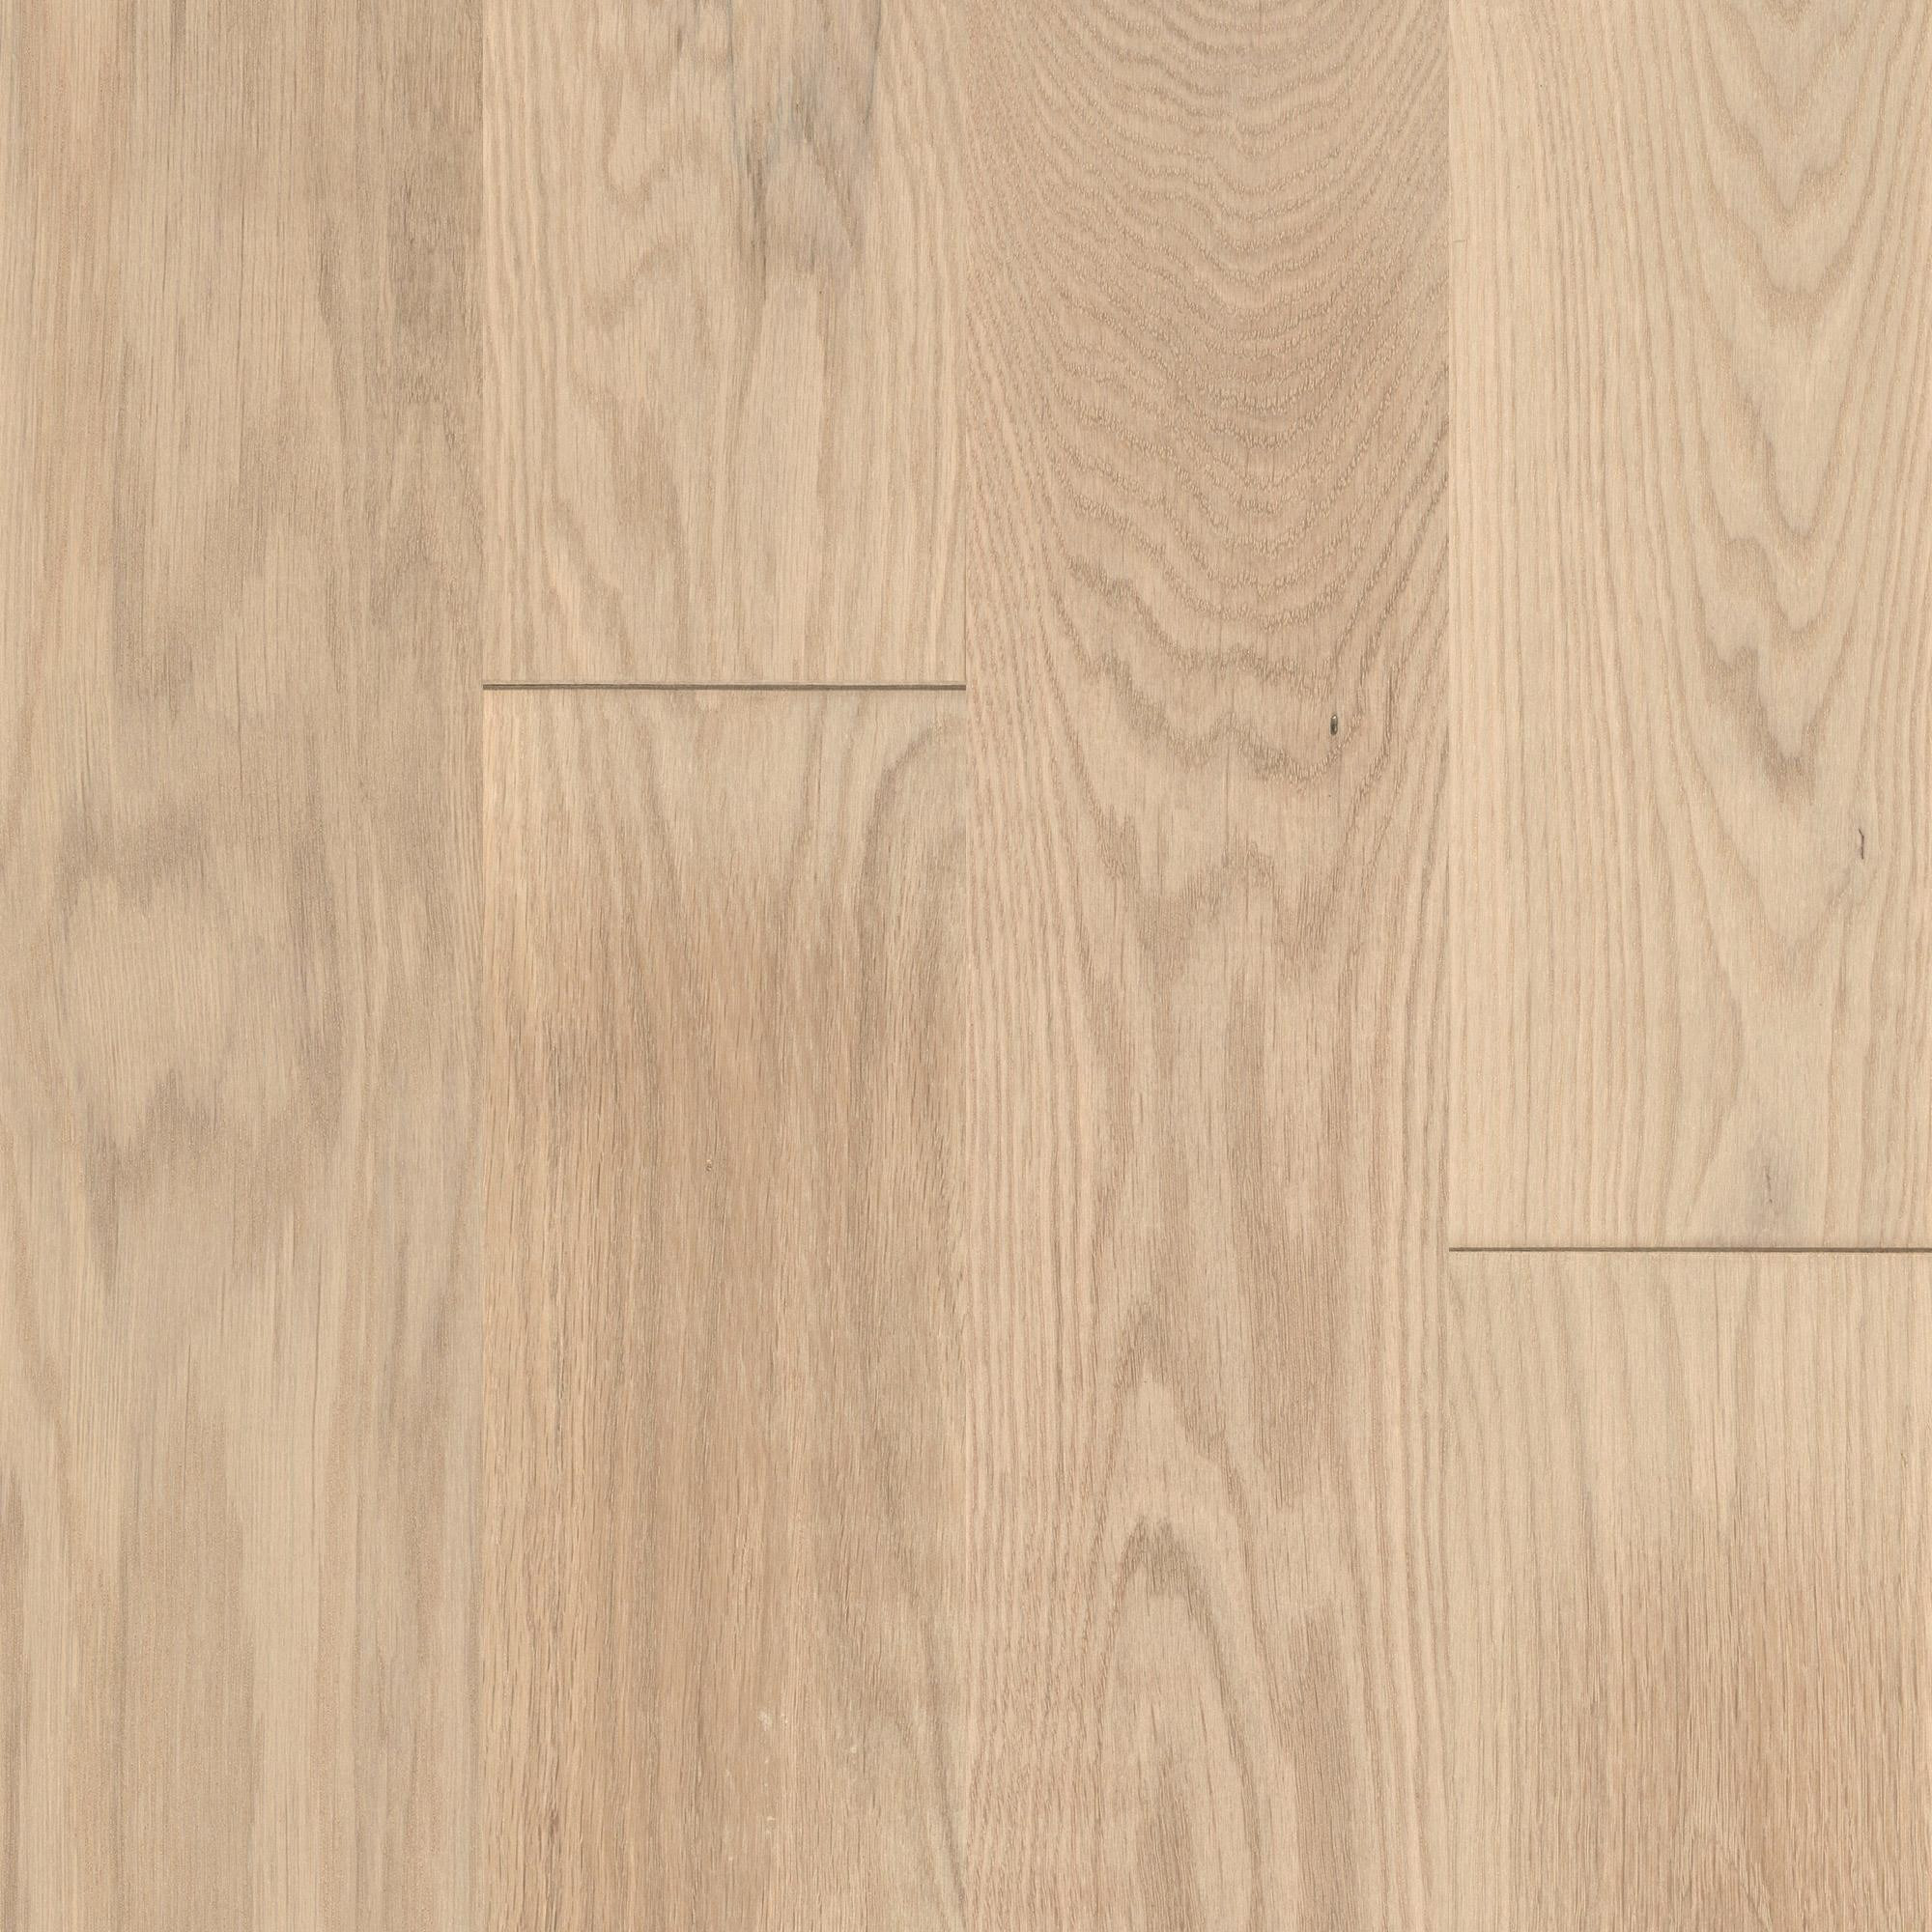 Hardwood Flooring Sale Canada Of Mullican Castillian Oak Glacier 5 Wide solid Hardwood Flooring Pertaining to Oak Glacier Castillian 5 X 55 Approved